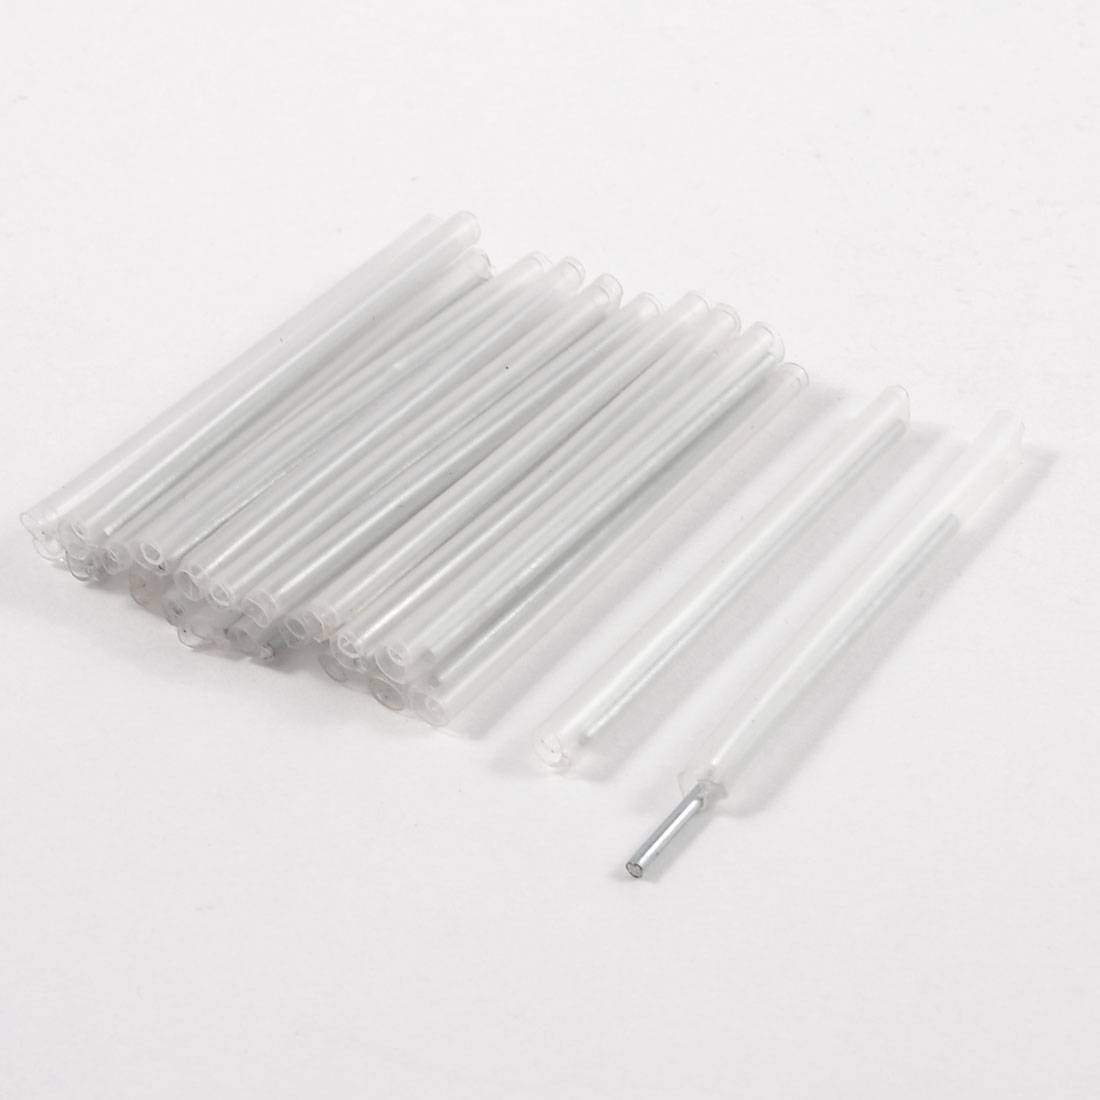 Heat Shrinkable Optic Fiber Splice Fusion Protection Sleeve 23 Pcs